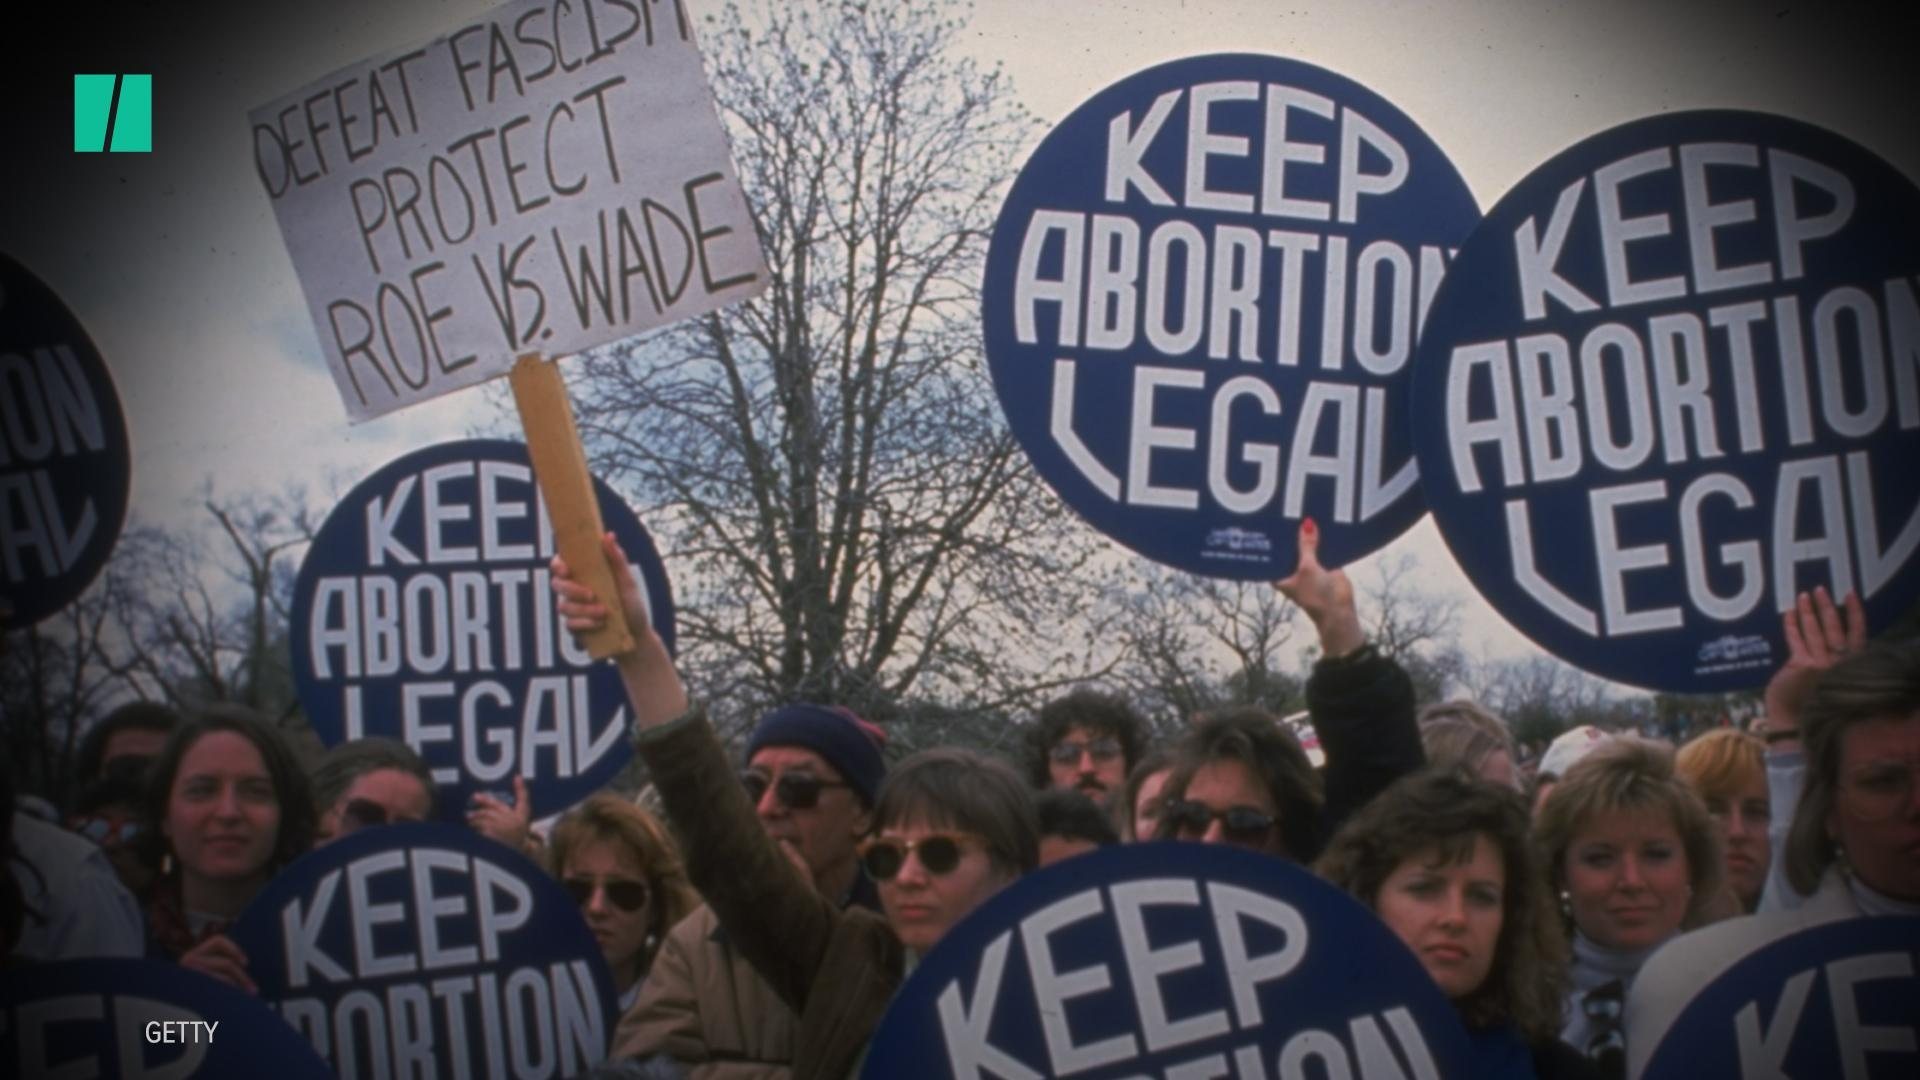 The Lawmakers Behind 'Fetal Heartbeat' Abortion Bans Are Lying To You